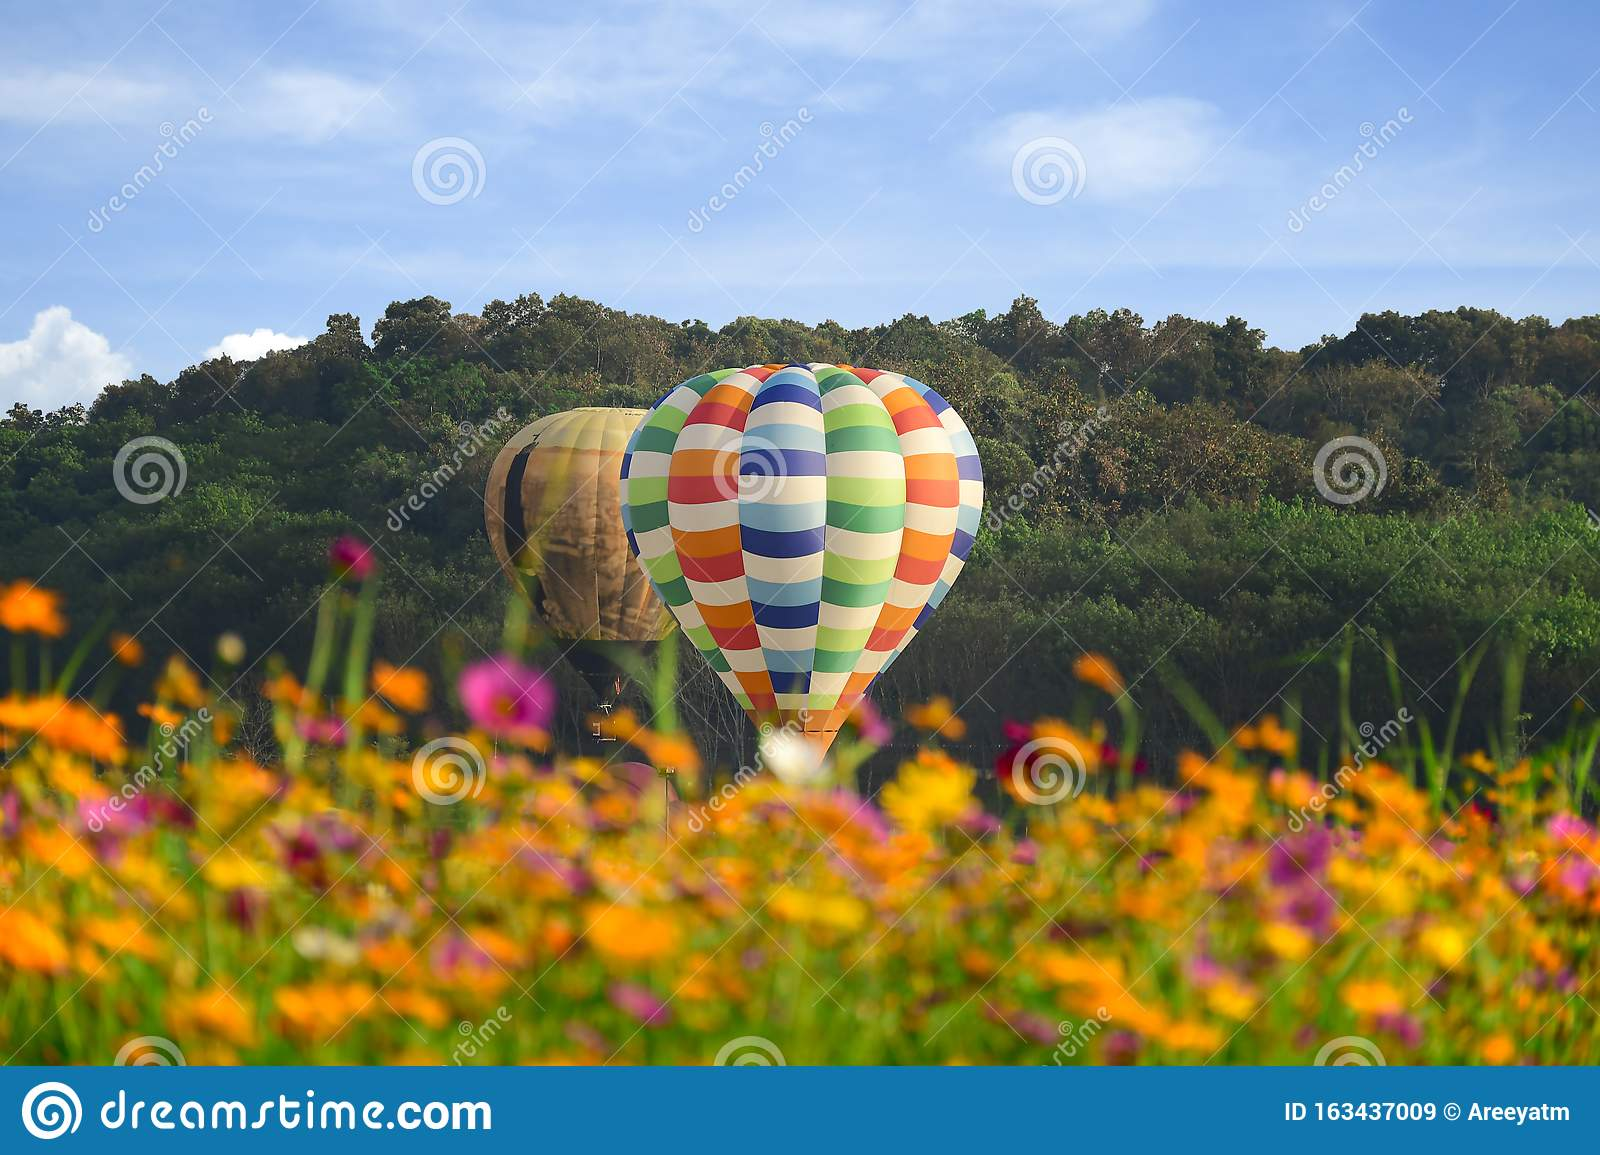 Hot air balloon and cosmos field over bright sky